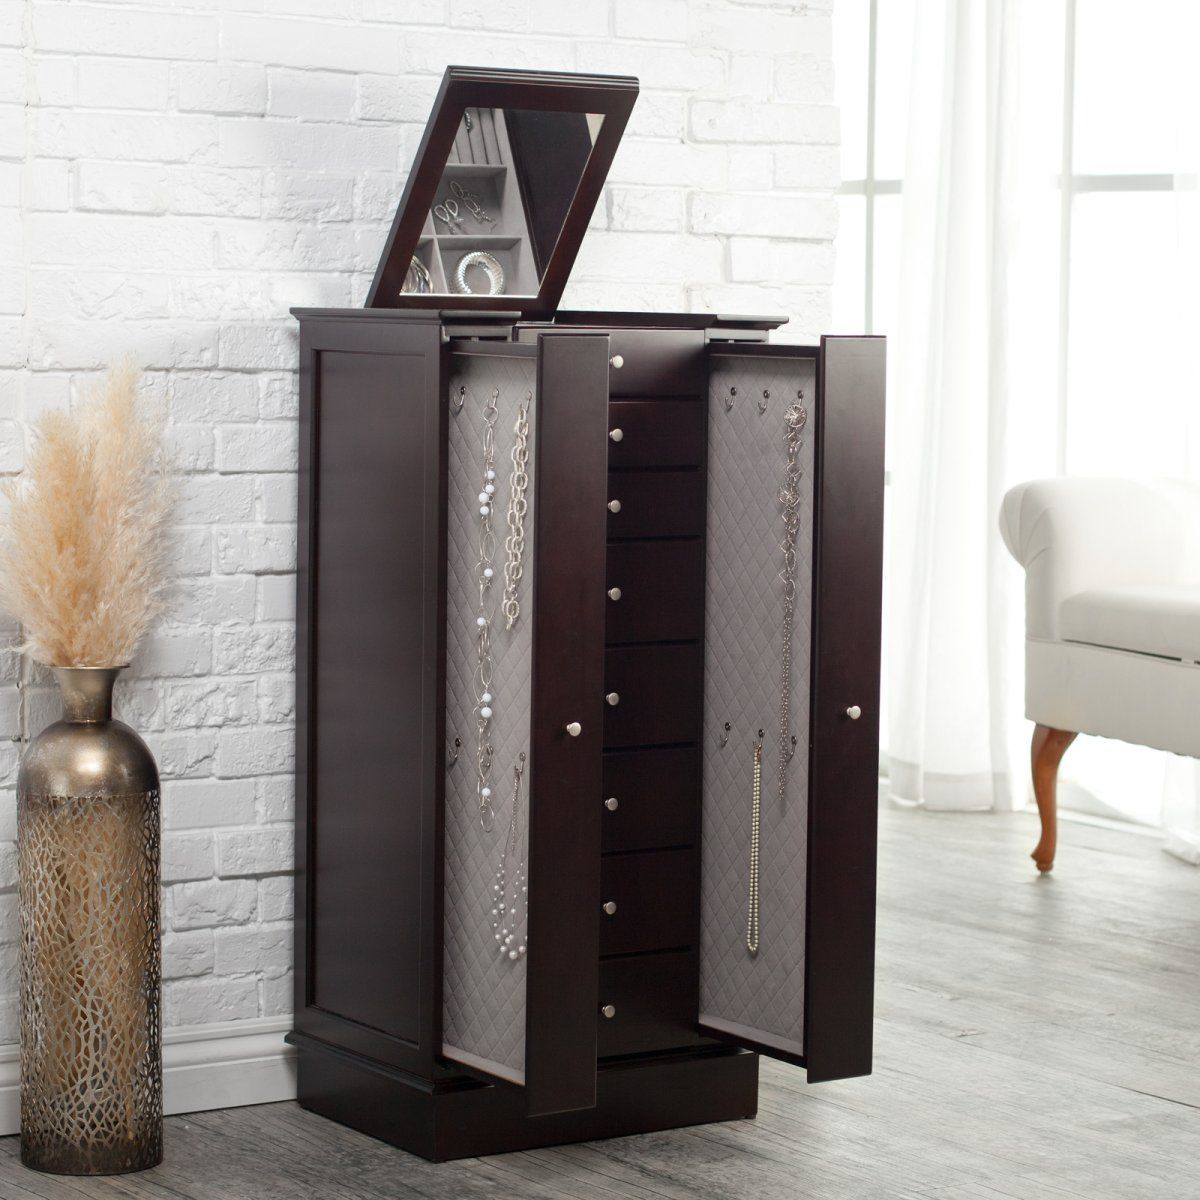 Exquisite Jewelry Armoire with Quilted Pullout Storage Espresso